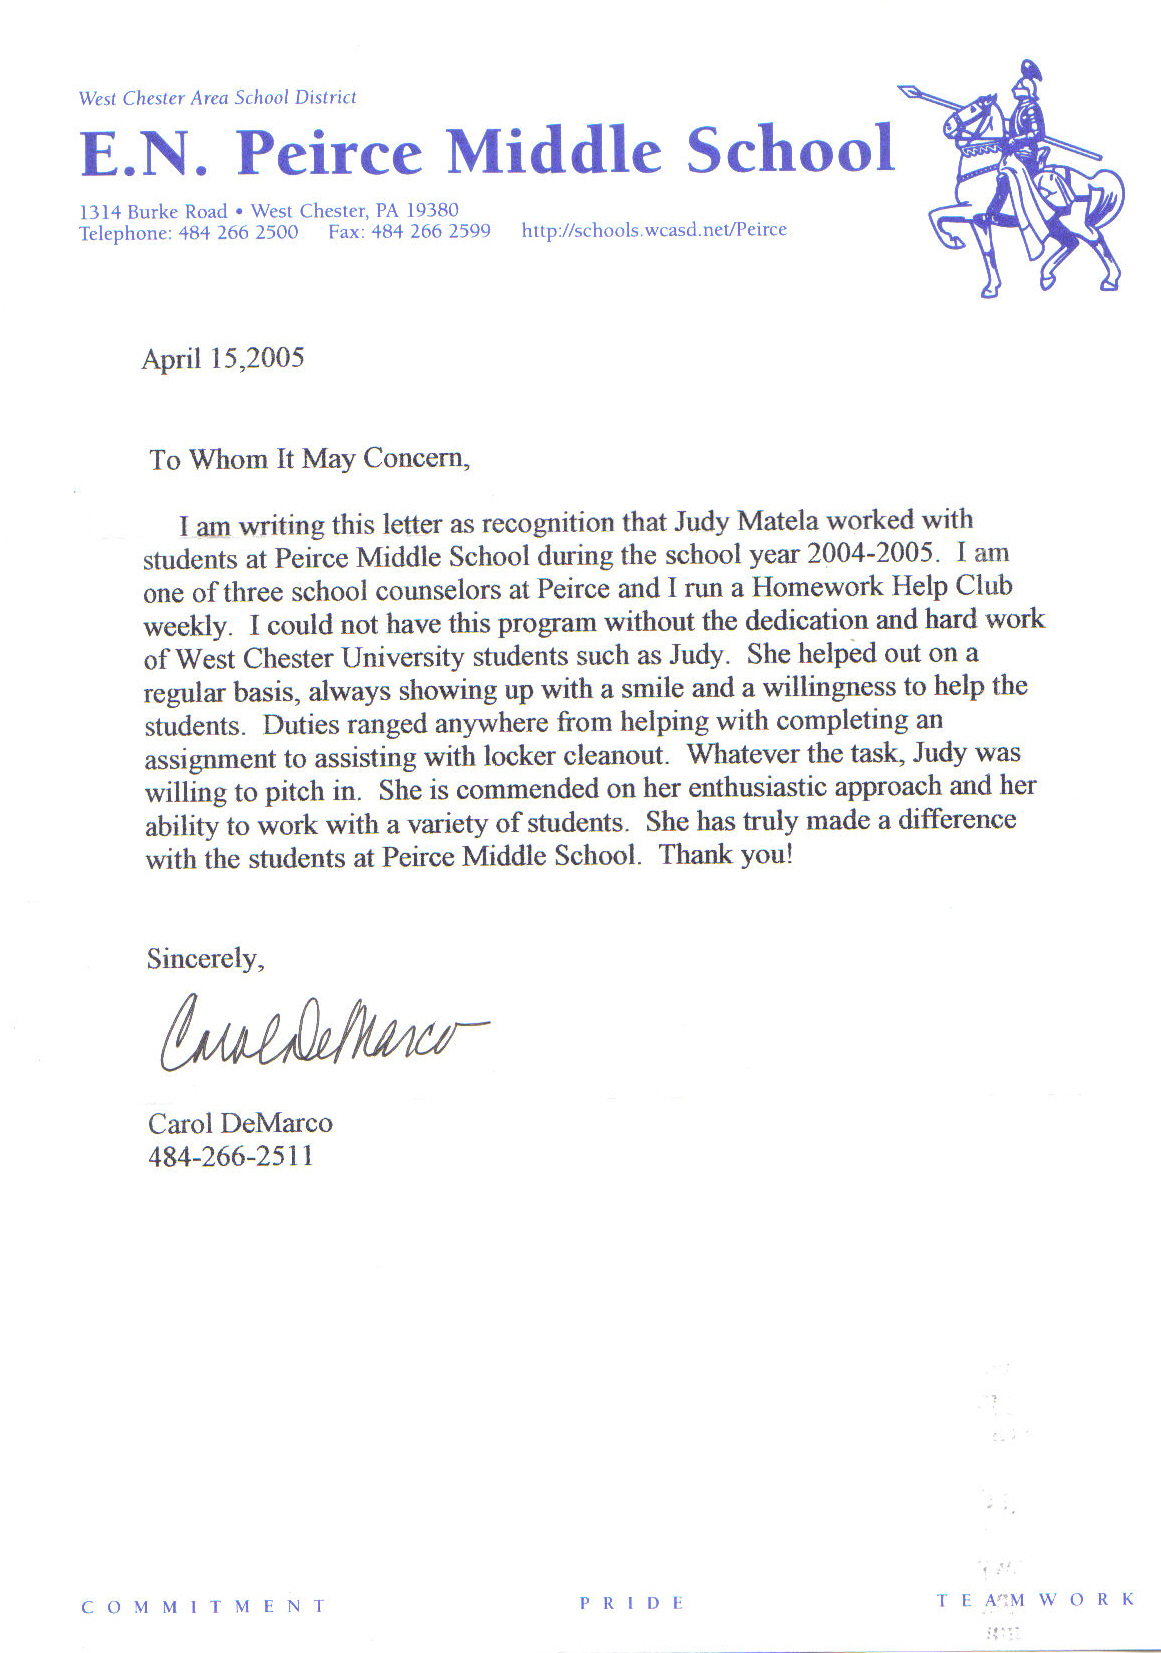 Grad School Letter Of Recommendation Template - Letter Of Re Mendation for A Teacher From A Colleague Acur